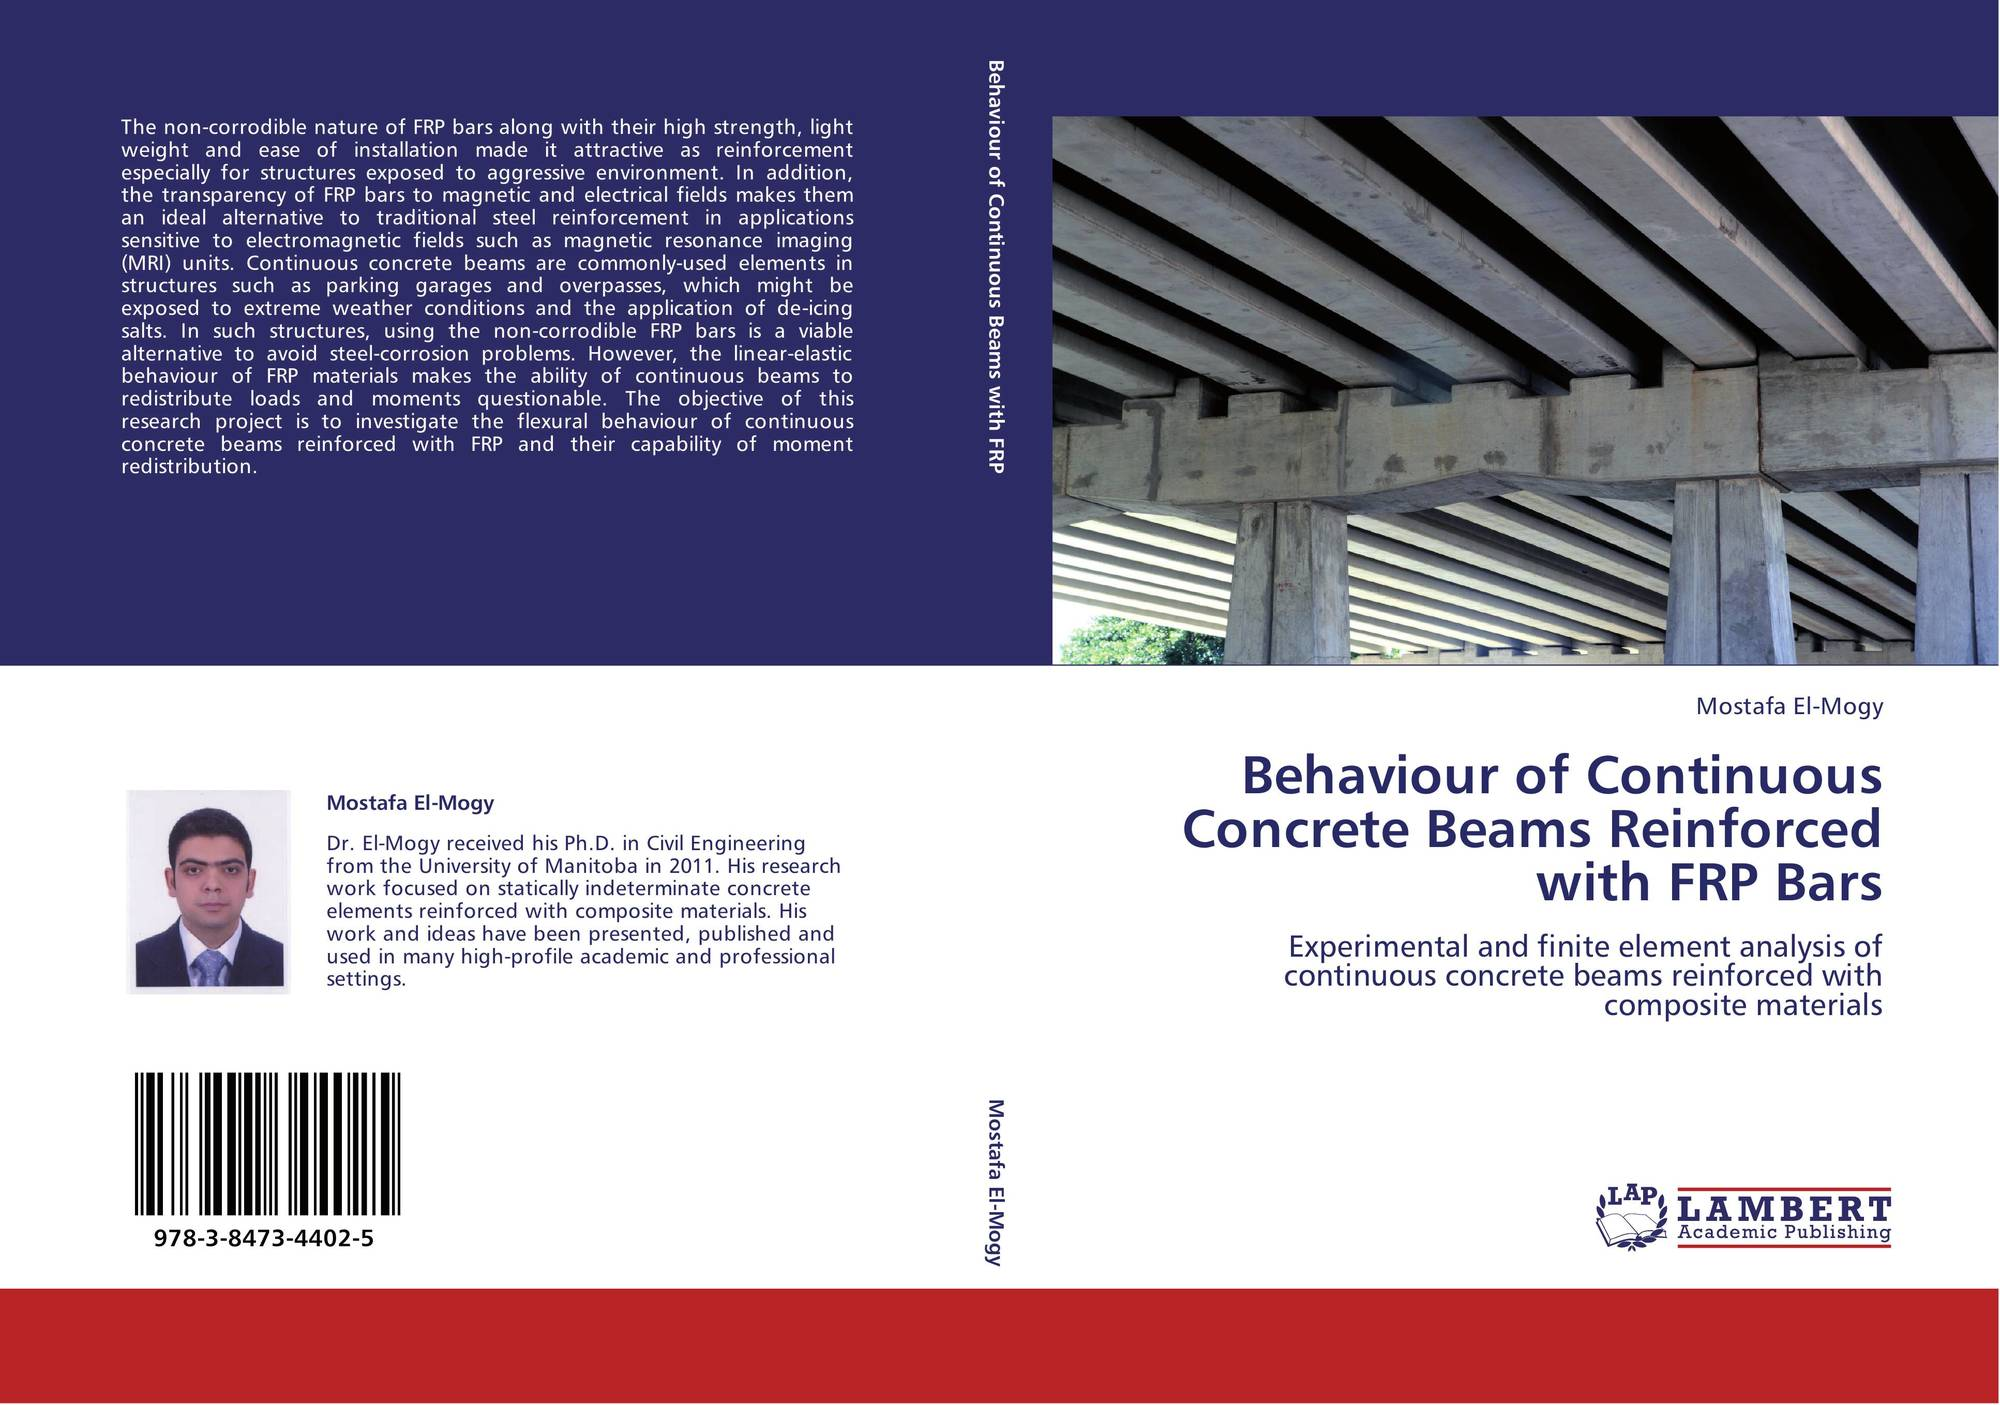 Behaviour of Continuous Concrete Beams Reinforced with FRP